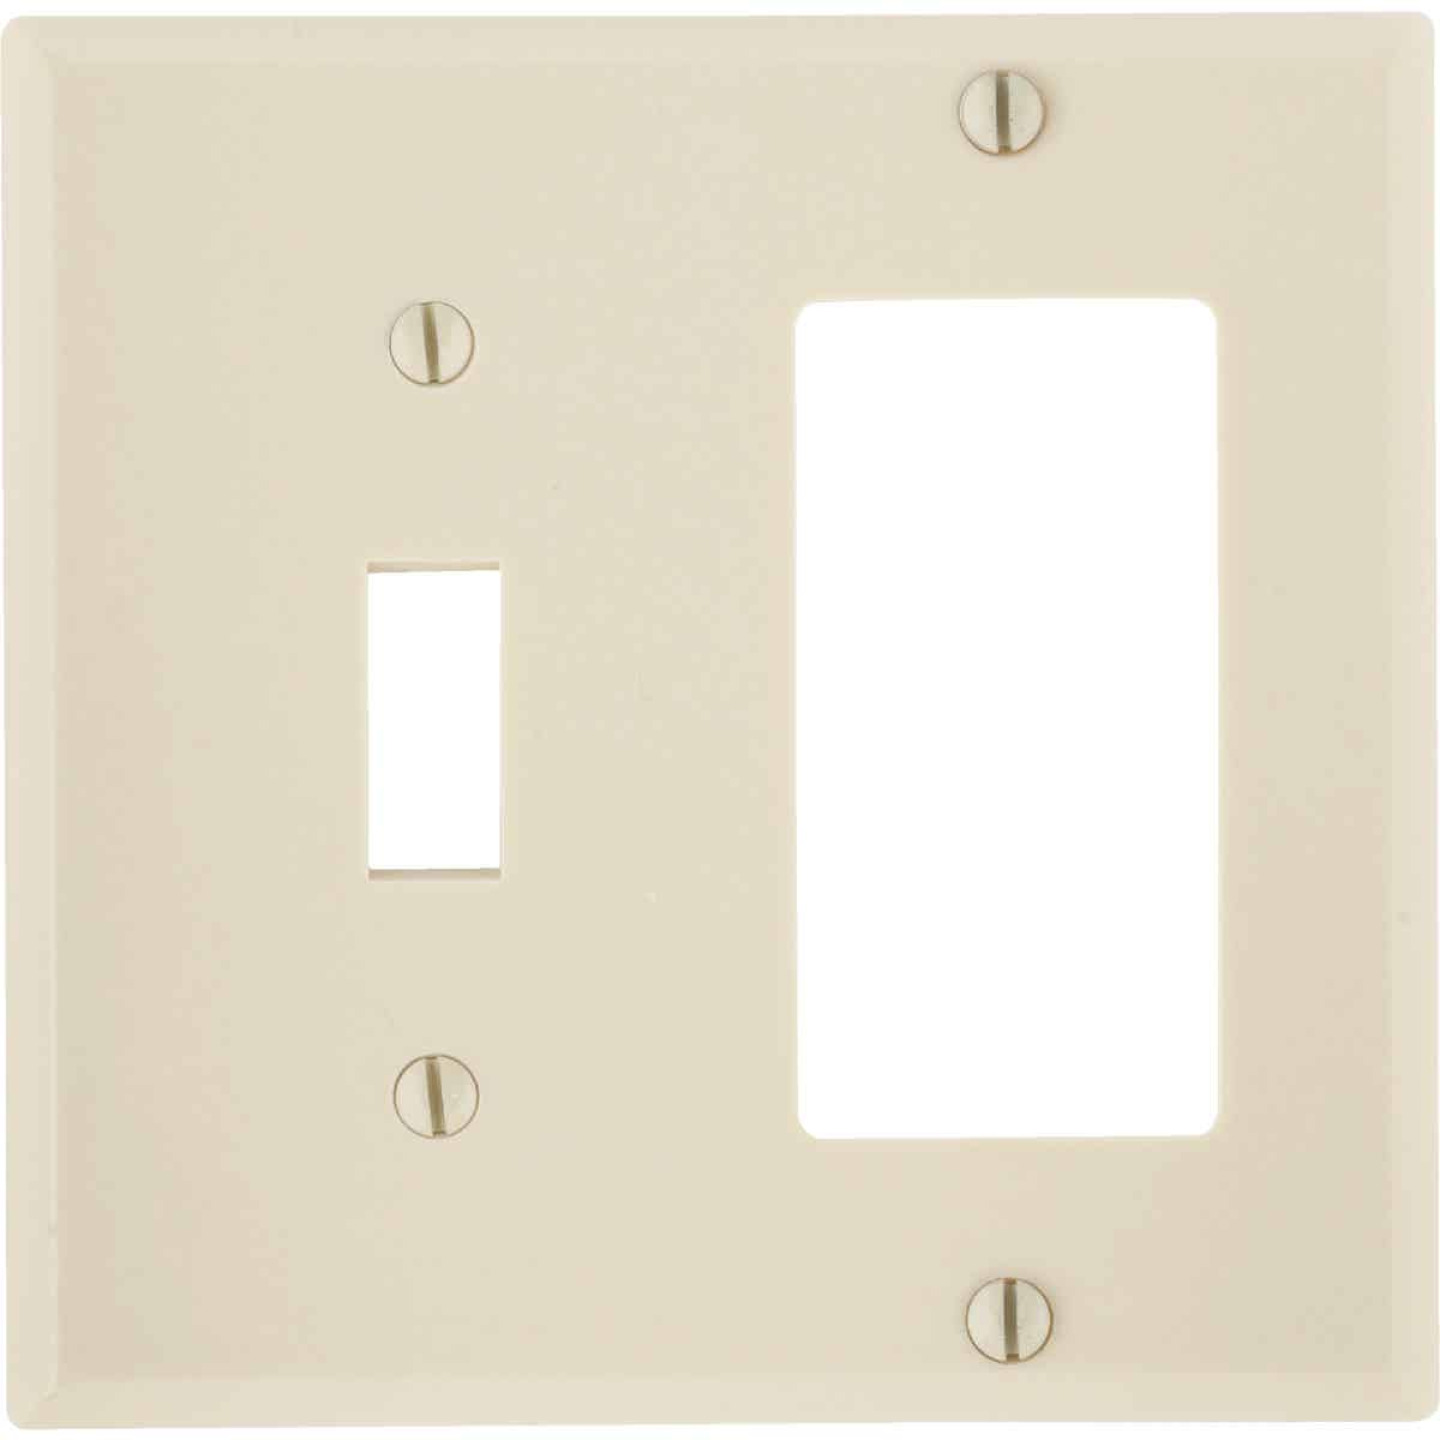 Leviton Decora 2-Gang Thermoset Single Toggle/Rocker Wall Plate, Ivory Image 1